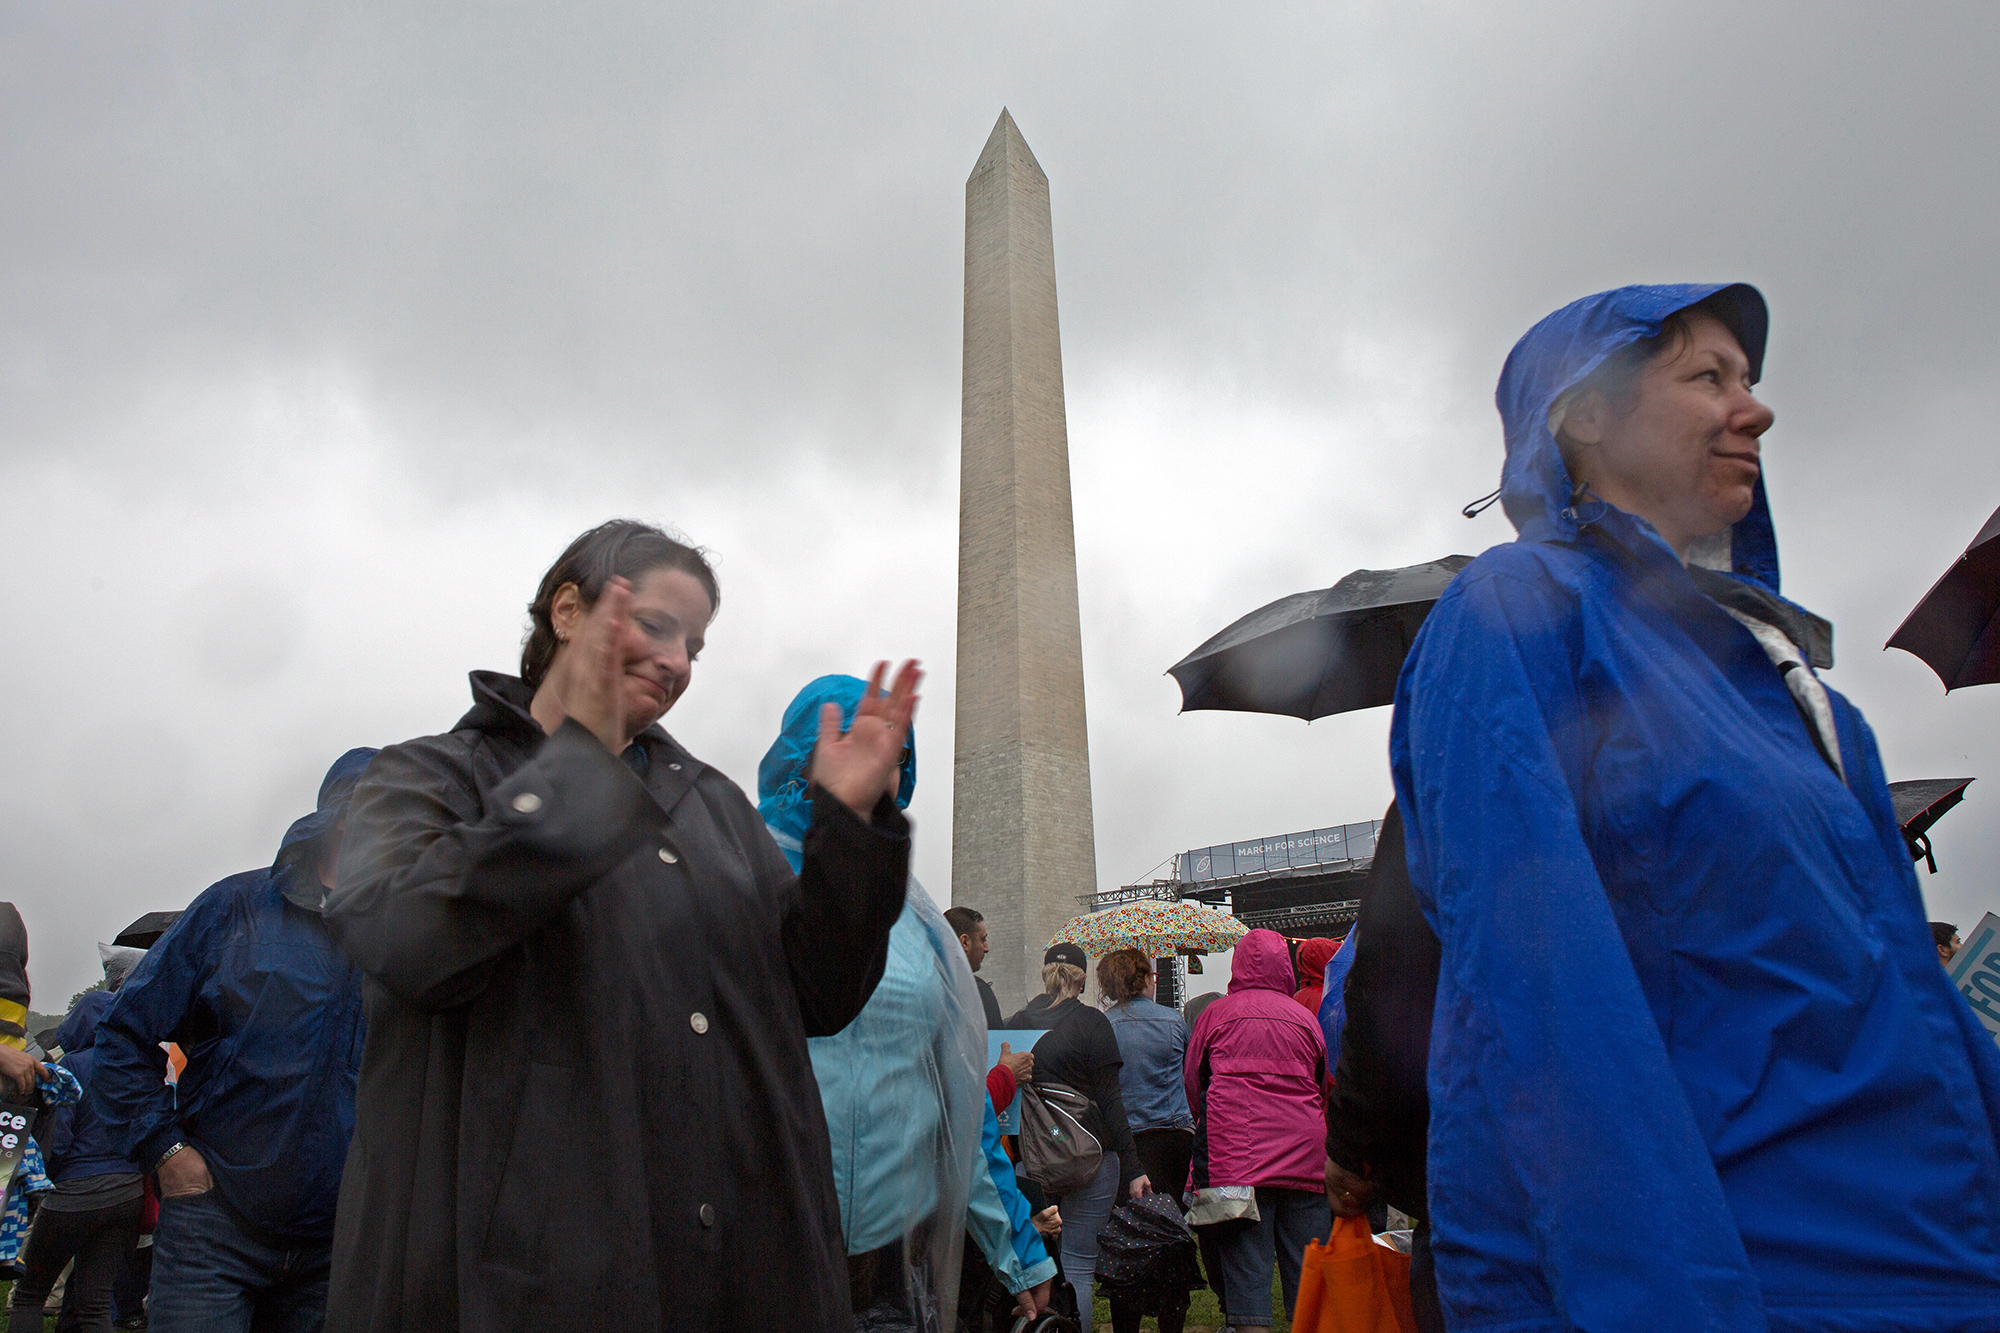 Washington Monument at Science March